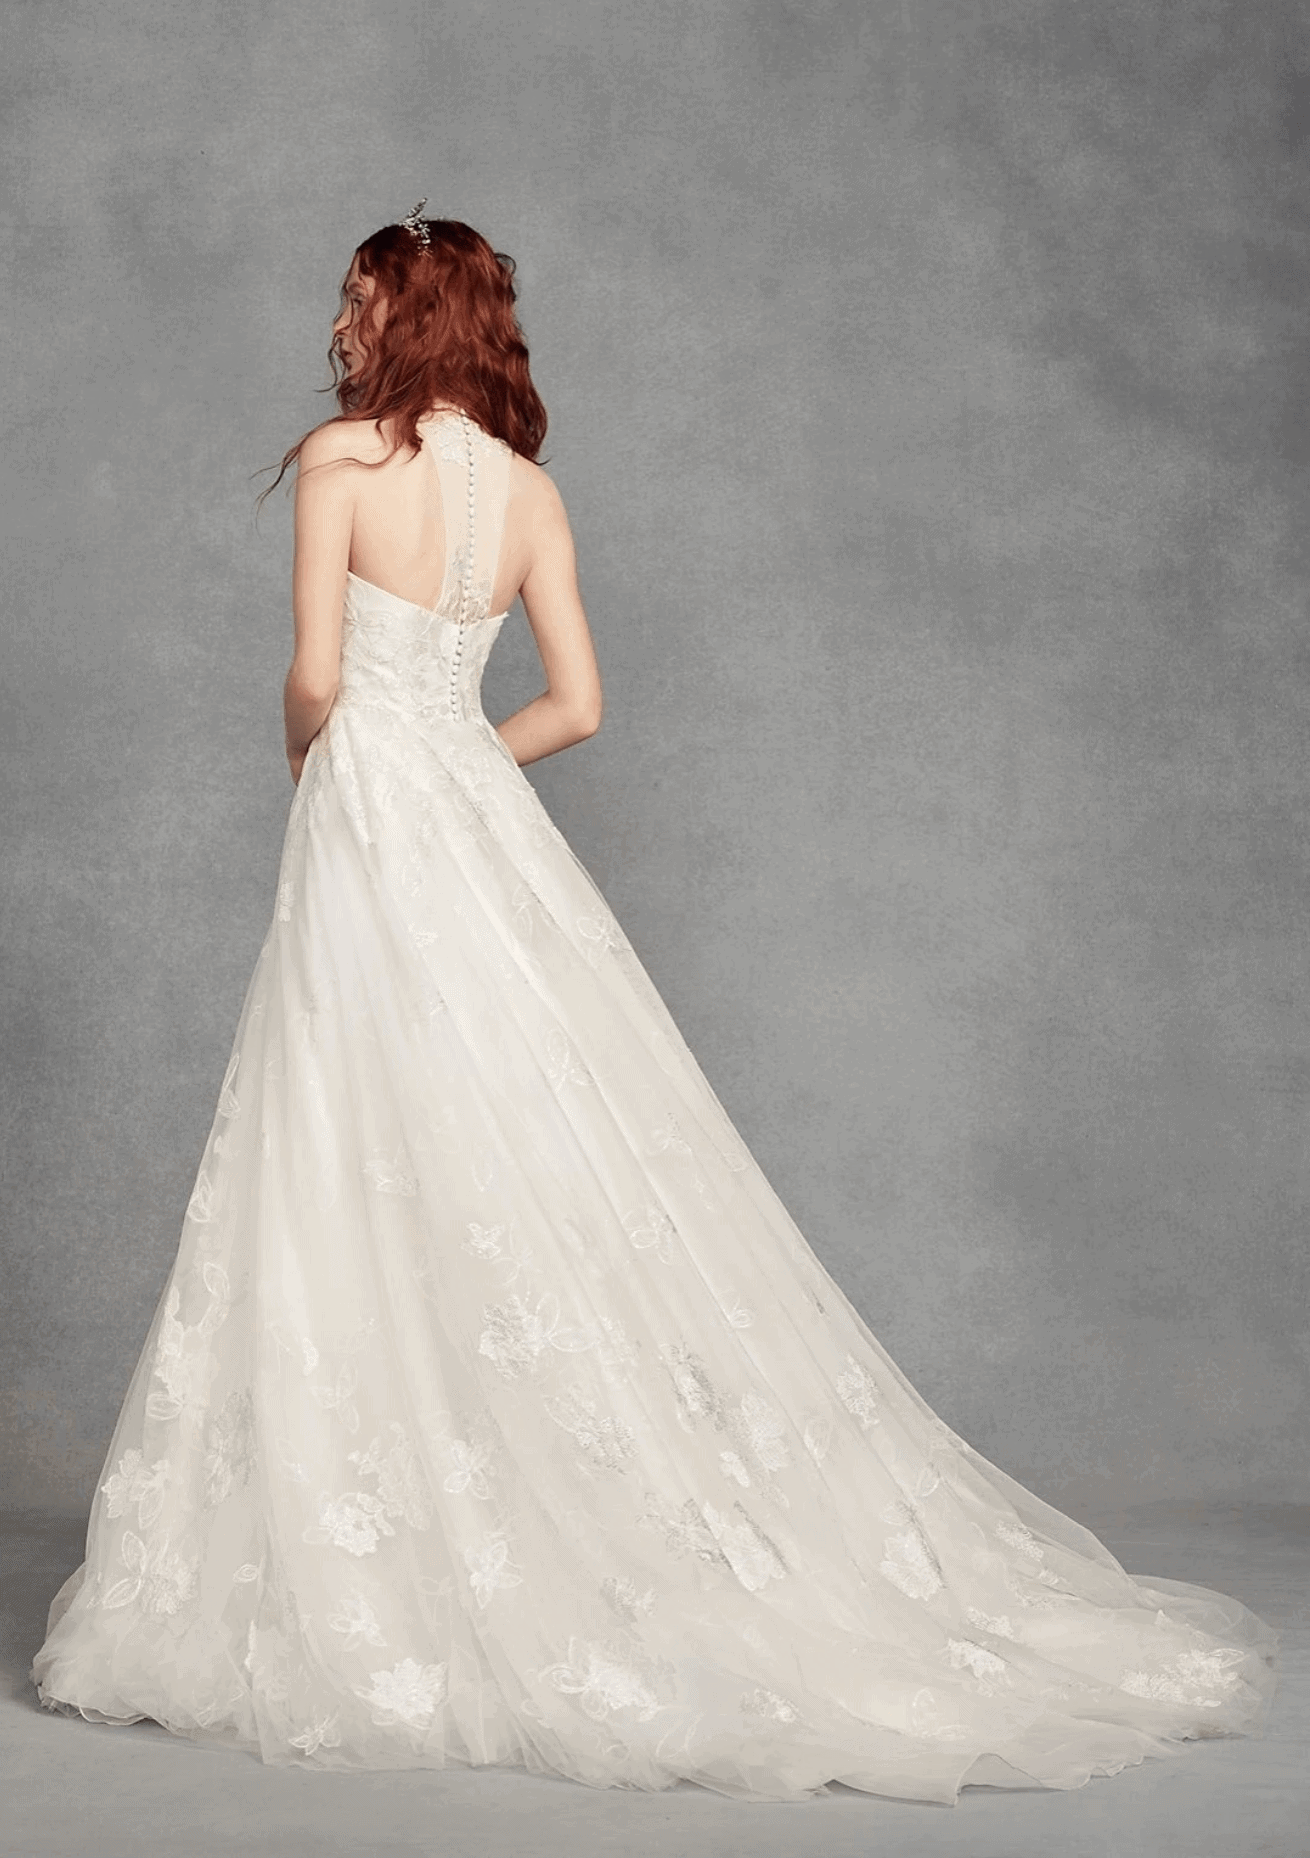 Designer Wedding Dresses Online Bridal Gowns Cheap Affordable Vera Wang White Illusion Floral